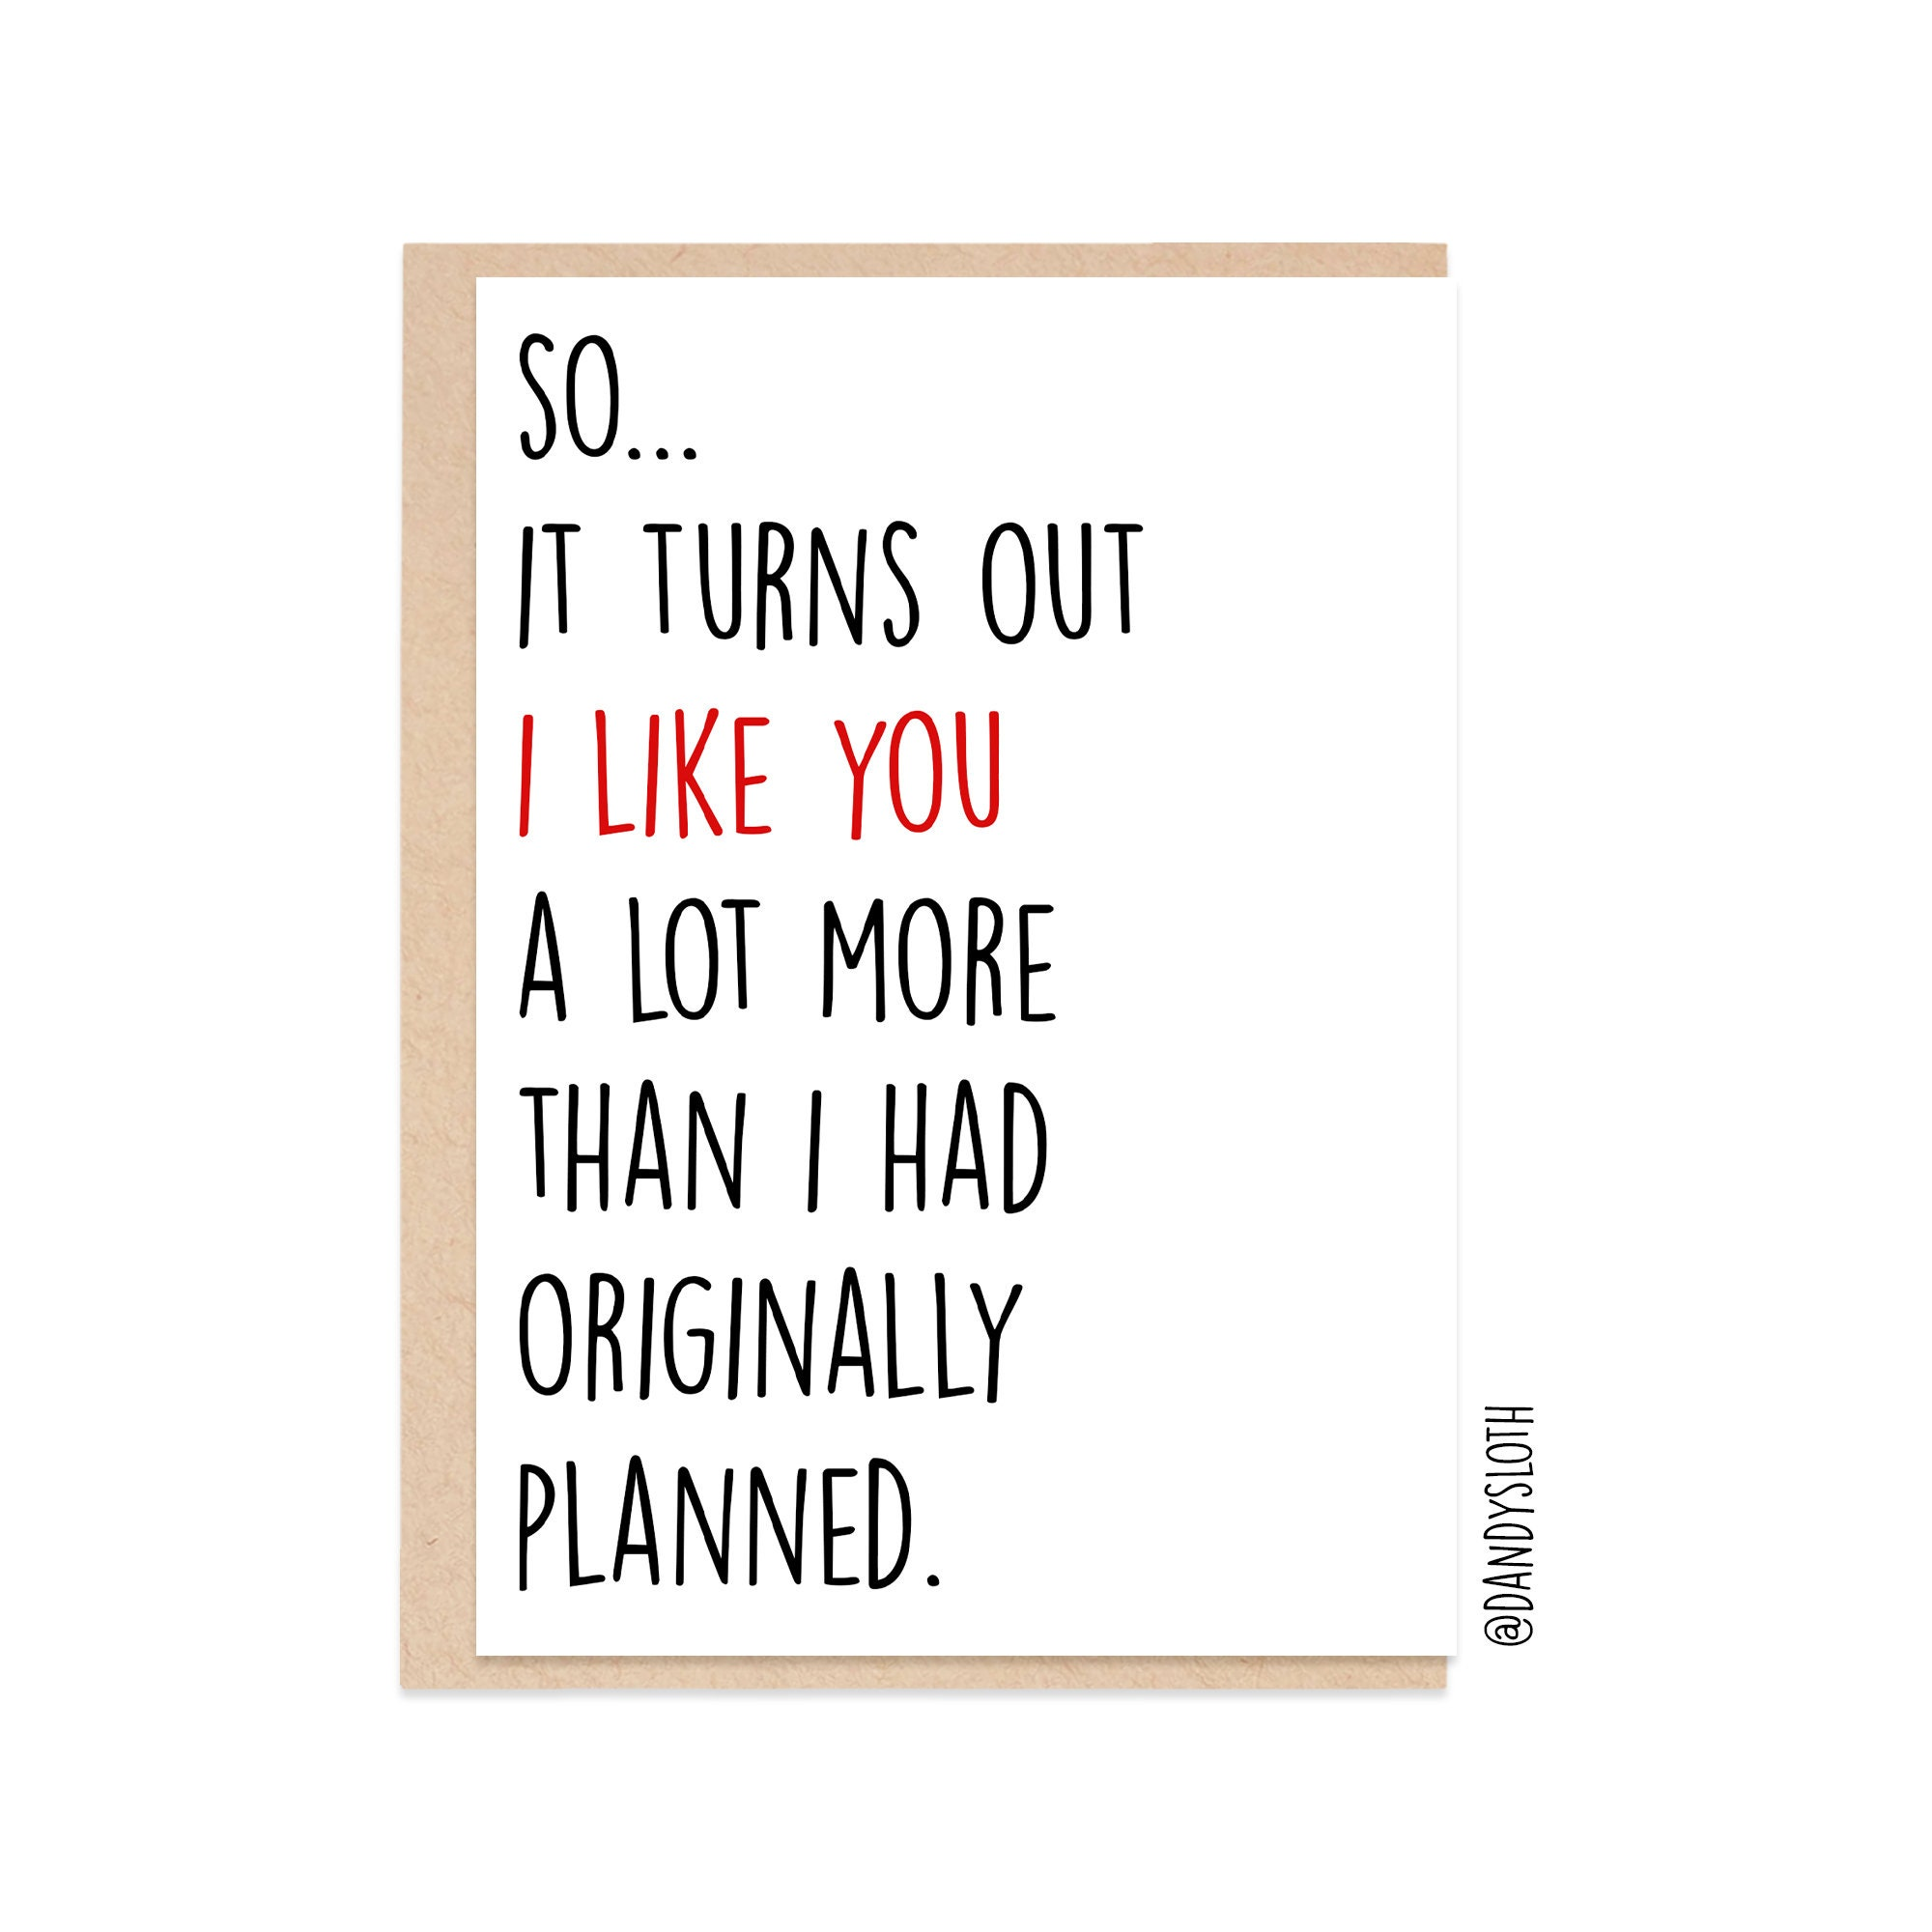 Turns out I like you a lot more than I originally planned